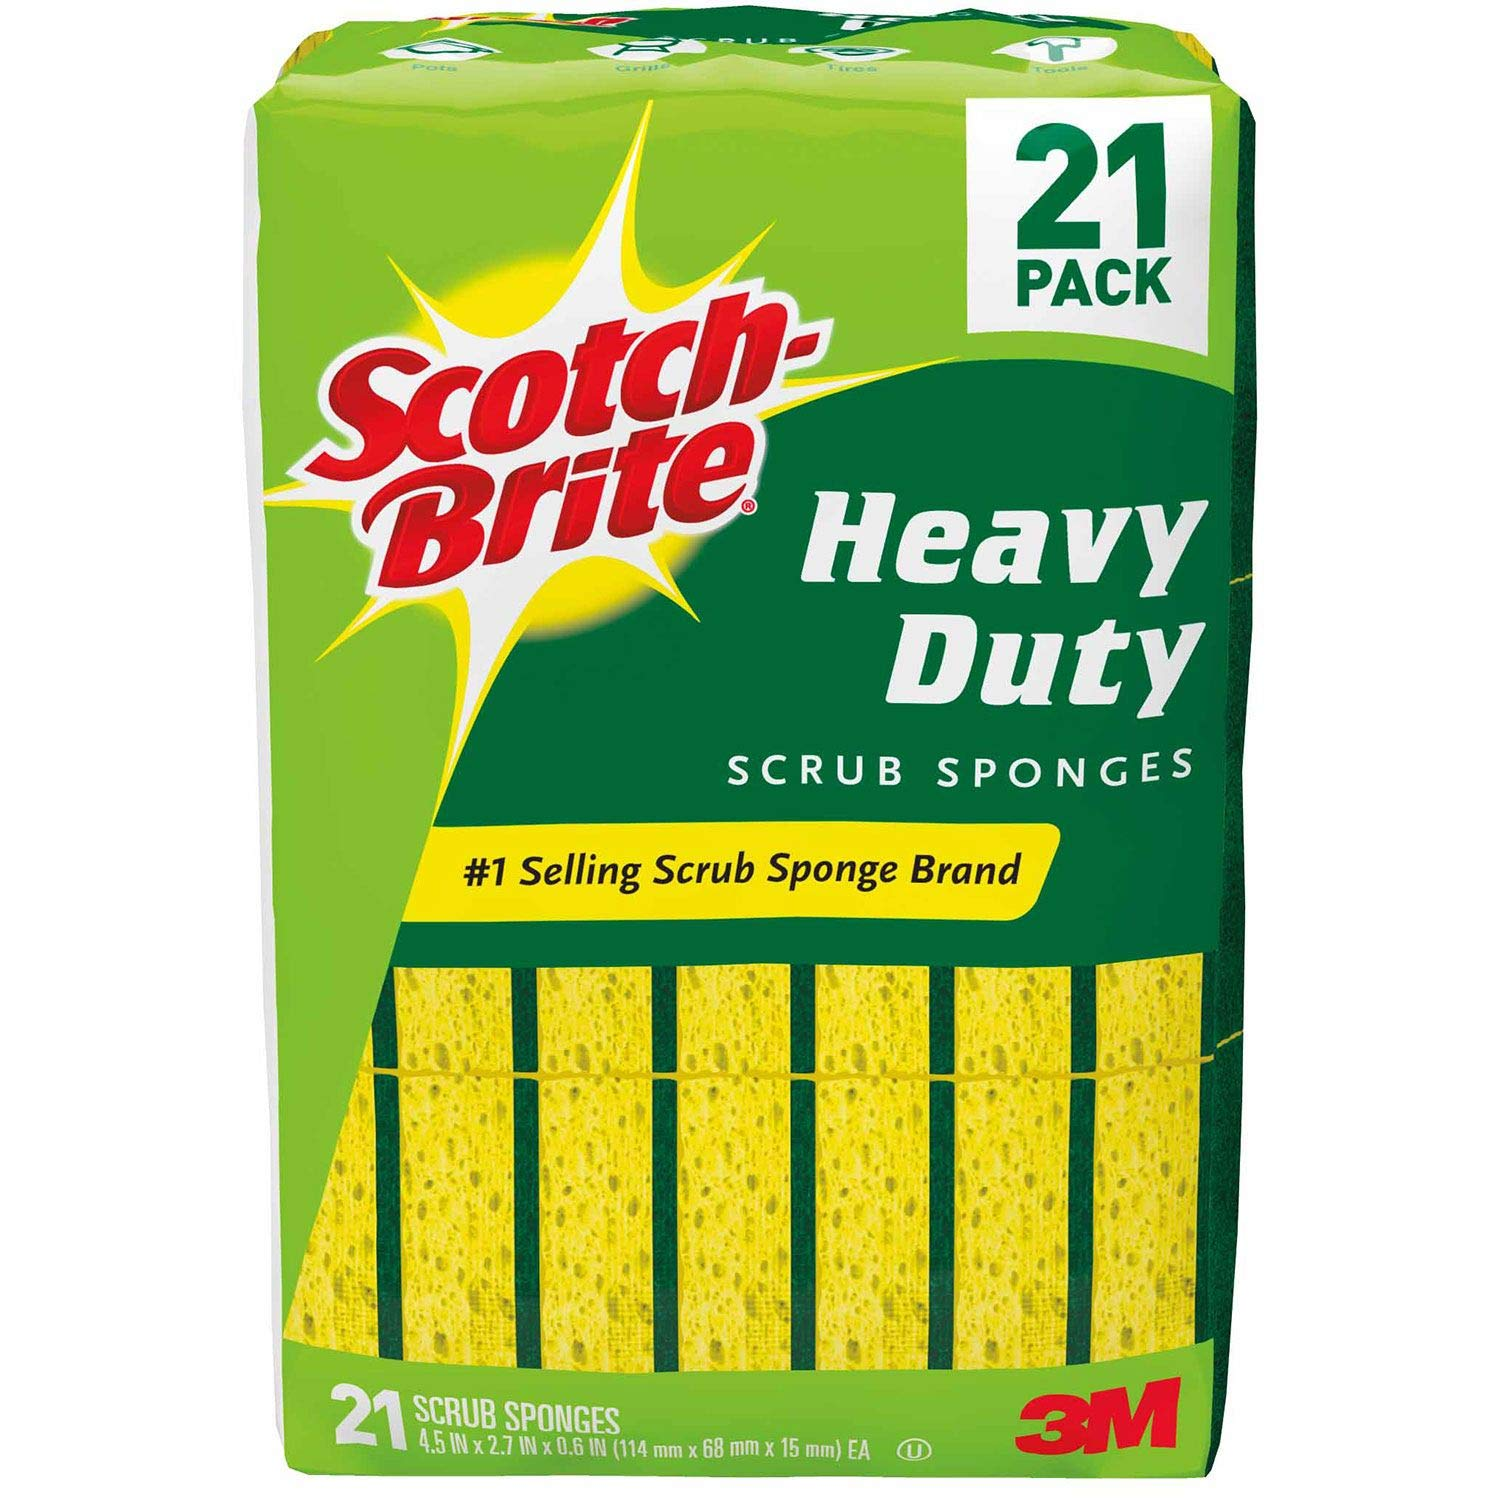 Scotch-Brite Heavy Duty Scrub Sponge (1 Pack (42 Count))